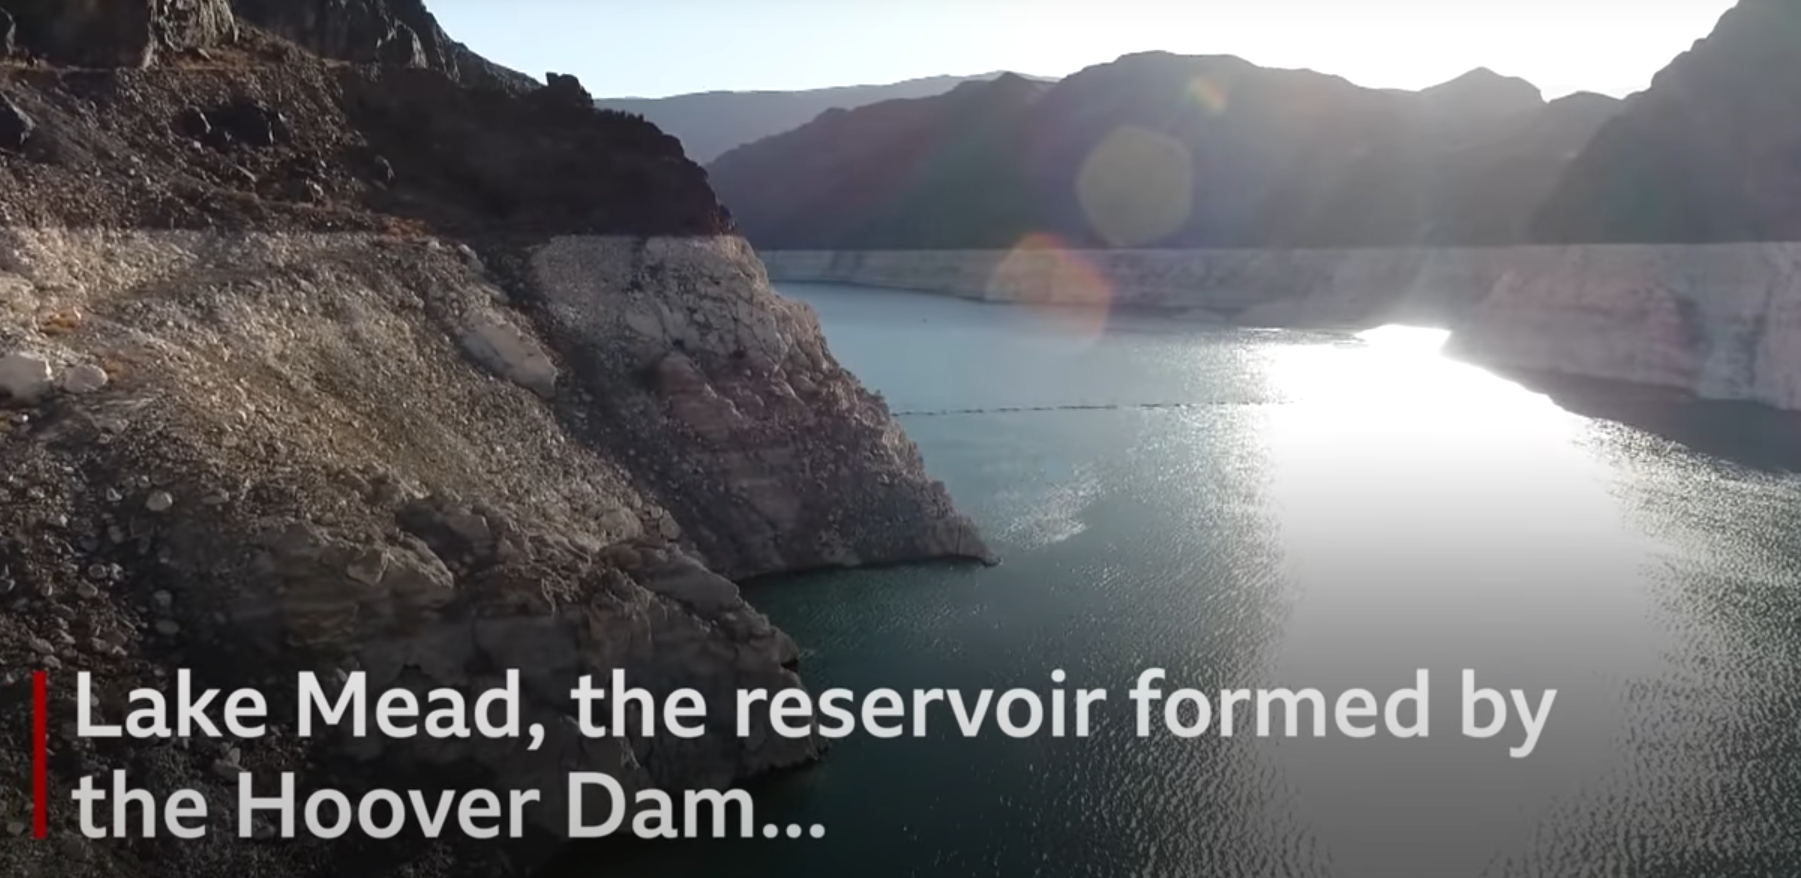 Colorado River: First-ever shortage declared amid record US drought